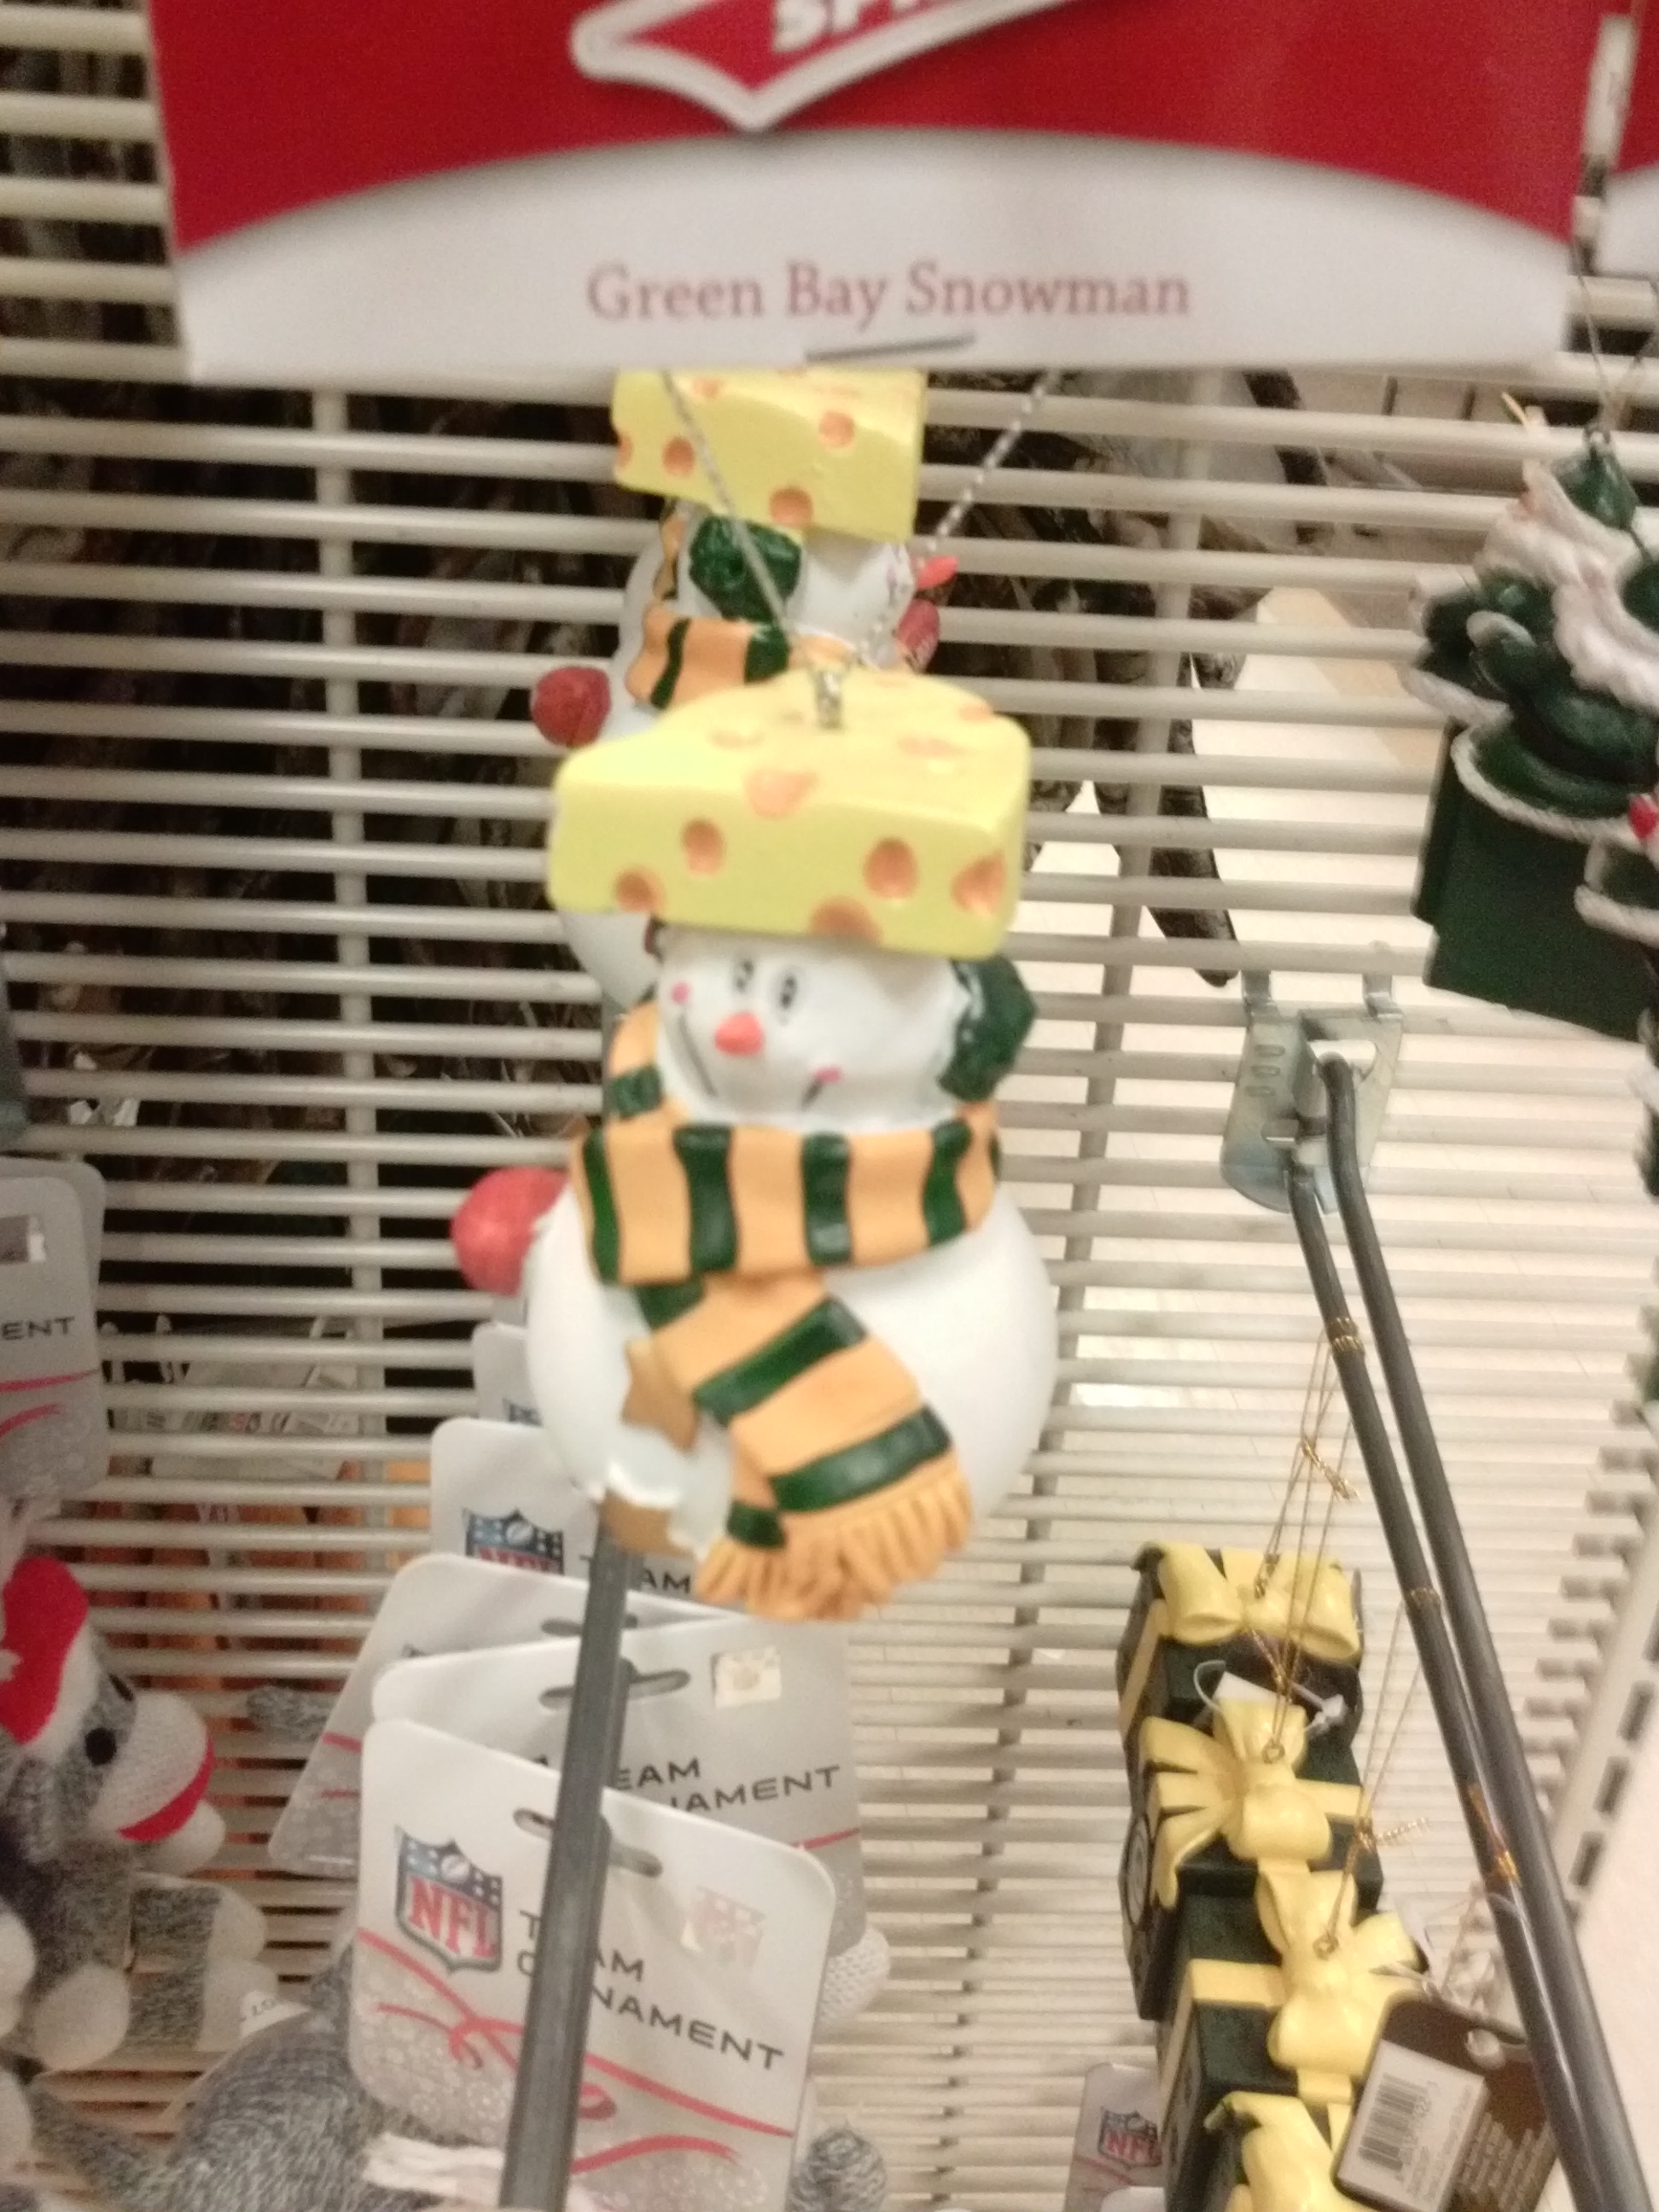 my daughter photographed this display of green bay packers themed holiday items at shopko - Green Bay Packers Christmas Ornaments